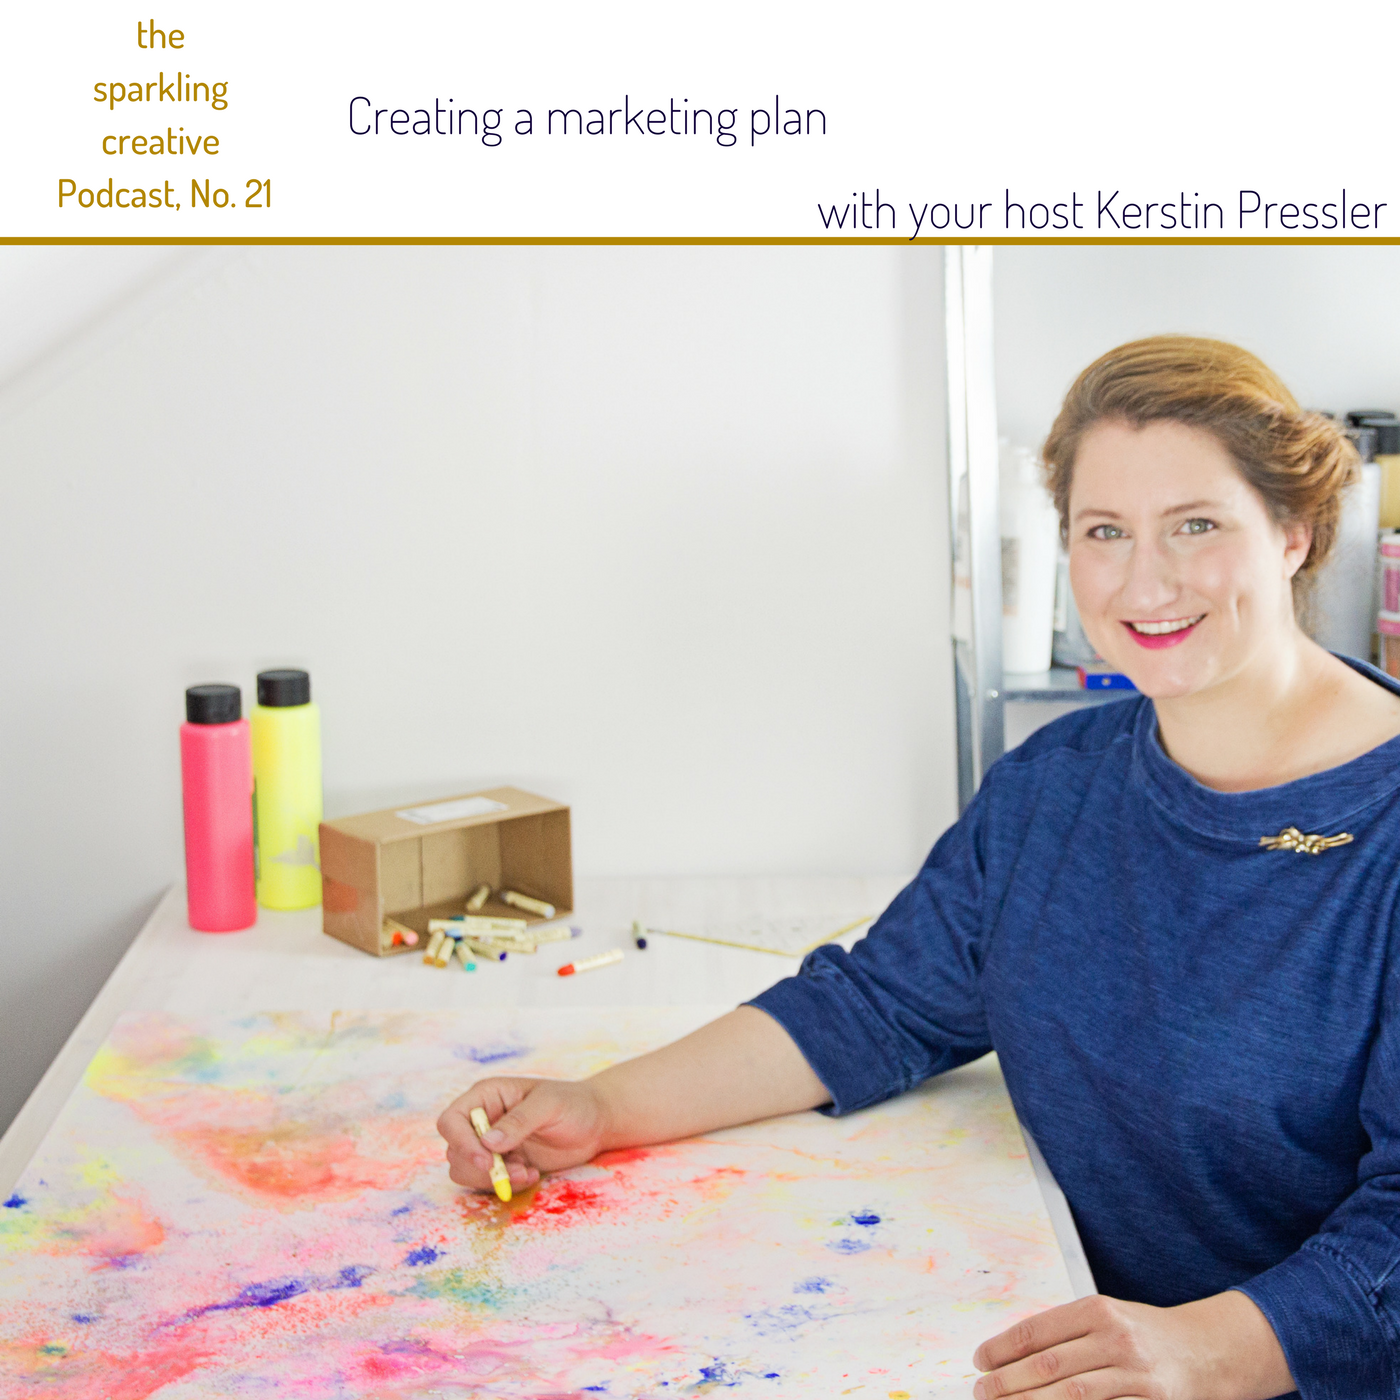 Artwork for Episode 21: Creating a marketing plan